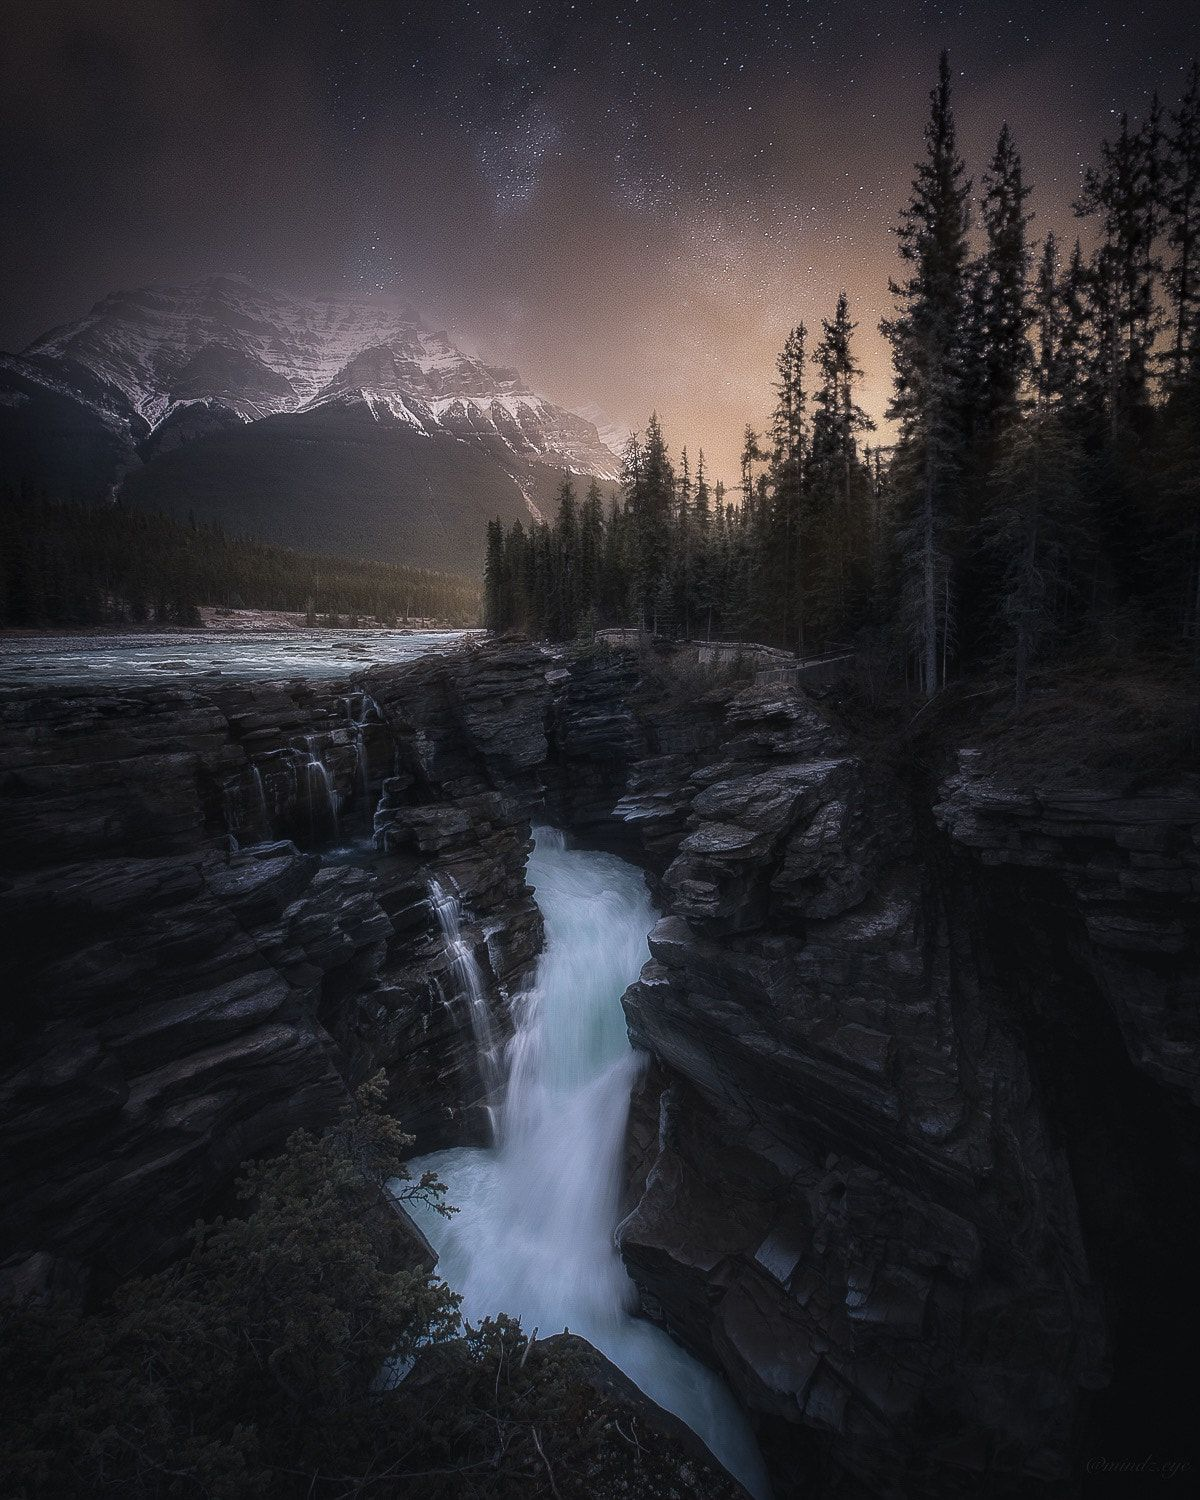 Untitled By Mindz Eye Canada Landscape Water Nature Night Clouds Rocks Stars Waterfall Mountain Long Ex Cool Landscapes Landscape Pictures Canada Landscape